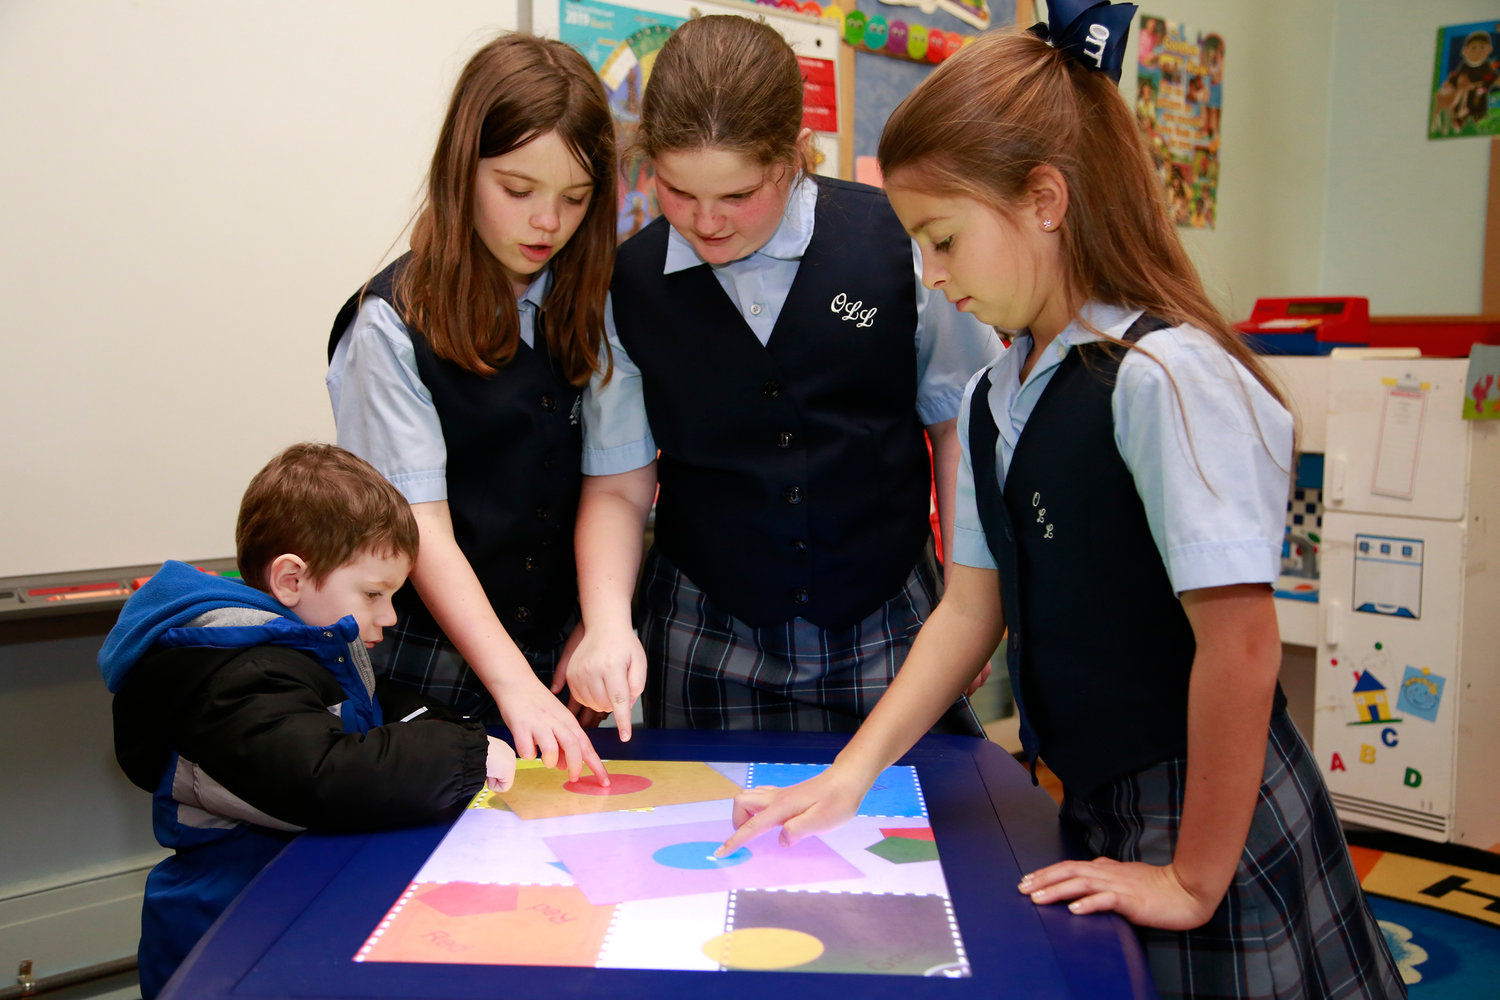 5th graders Gabriella Lackner, Victoria Lackner and Kayla Prizzi show 3-year old Joseph Lackner how to use the Nursery class smart table.